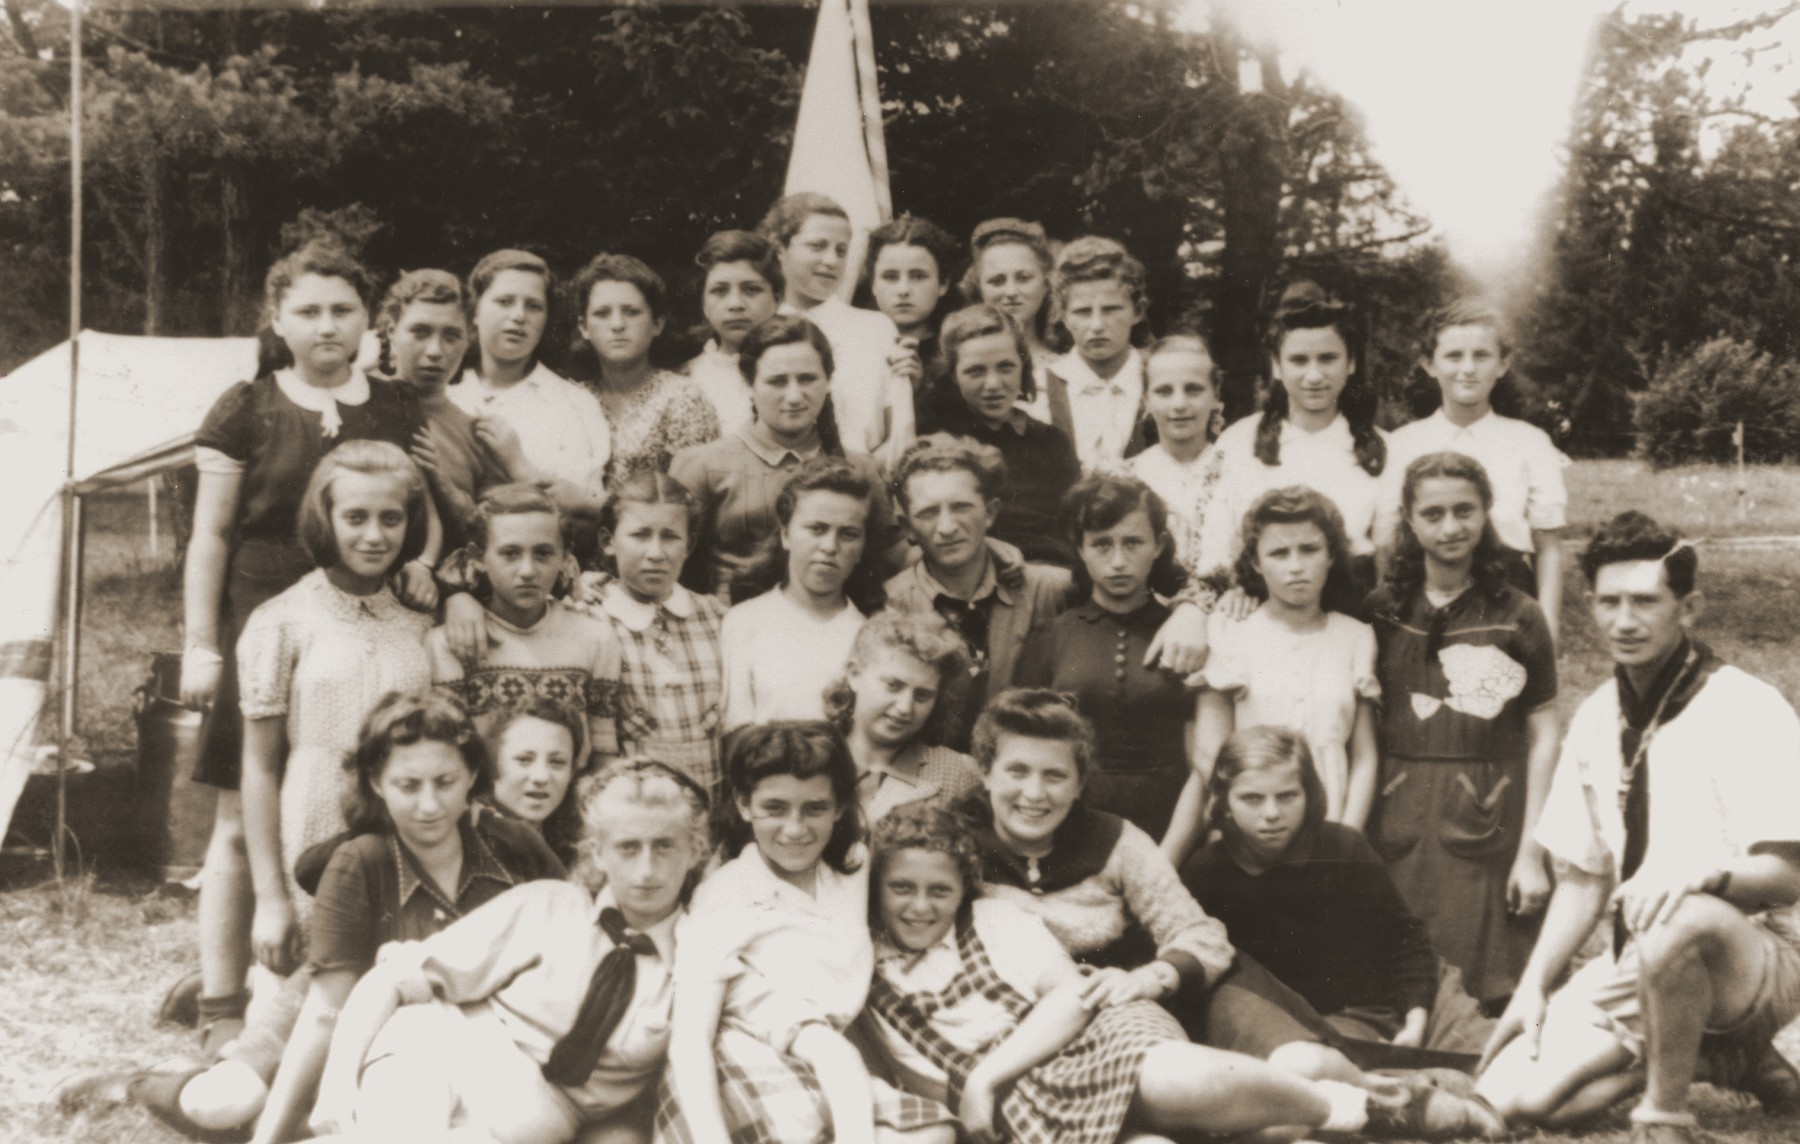 Group portrait of Jewish youth in the Bad Reichenhall DP camp.